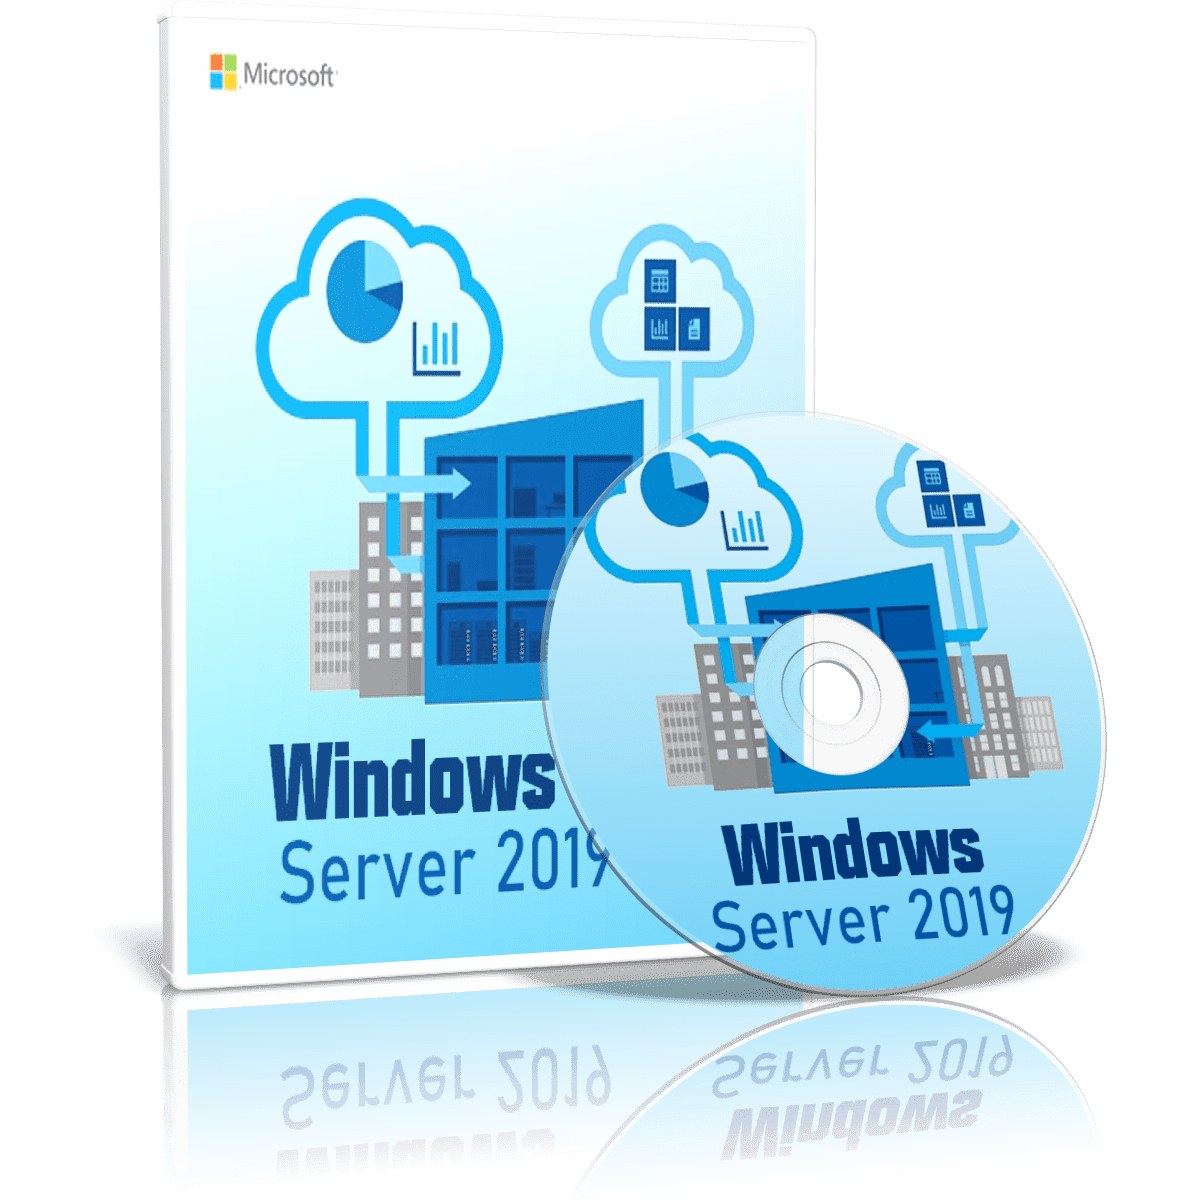 Windows Server 2019 v20.11.11 AIO update 17763.1577